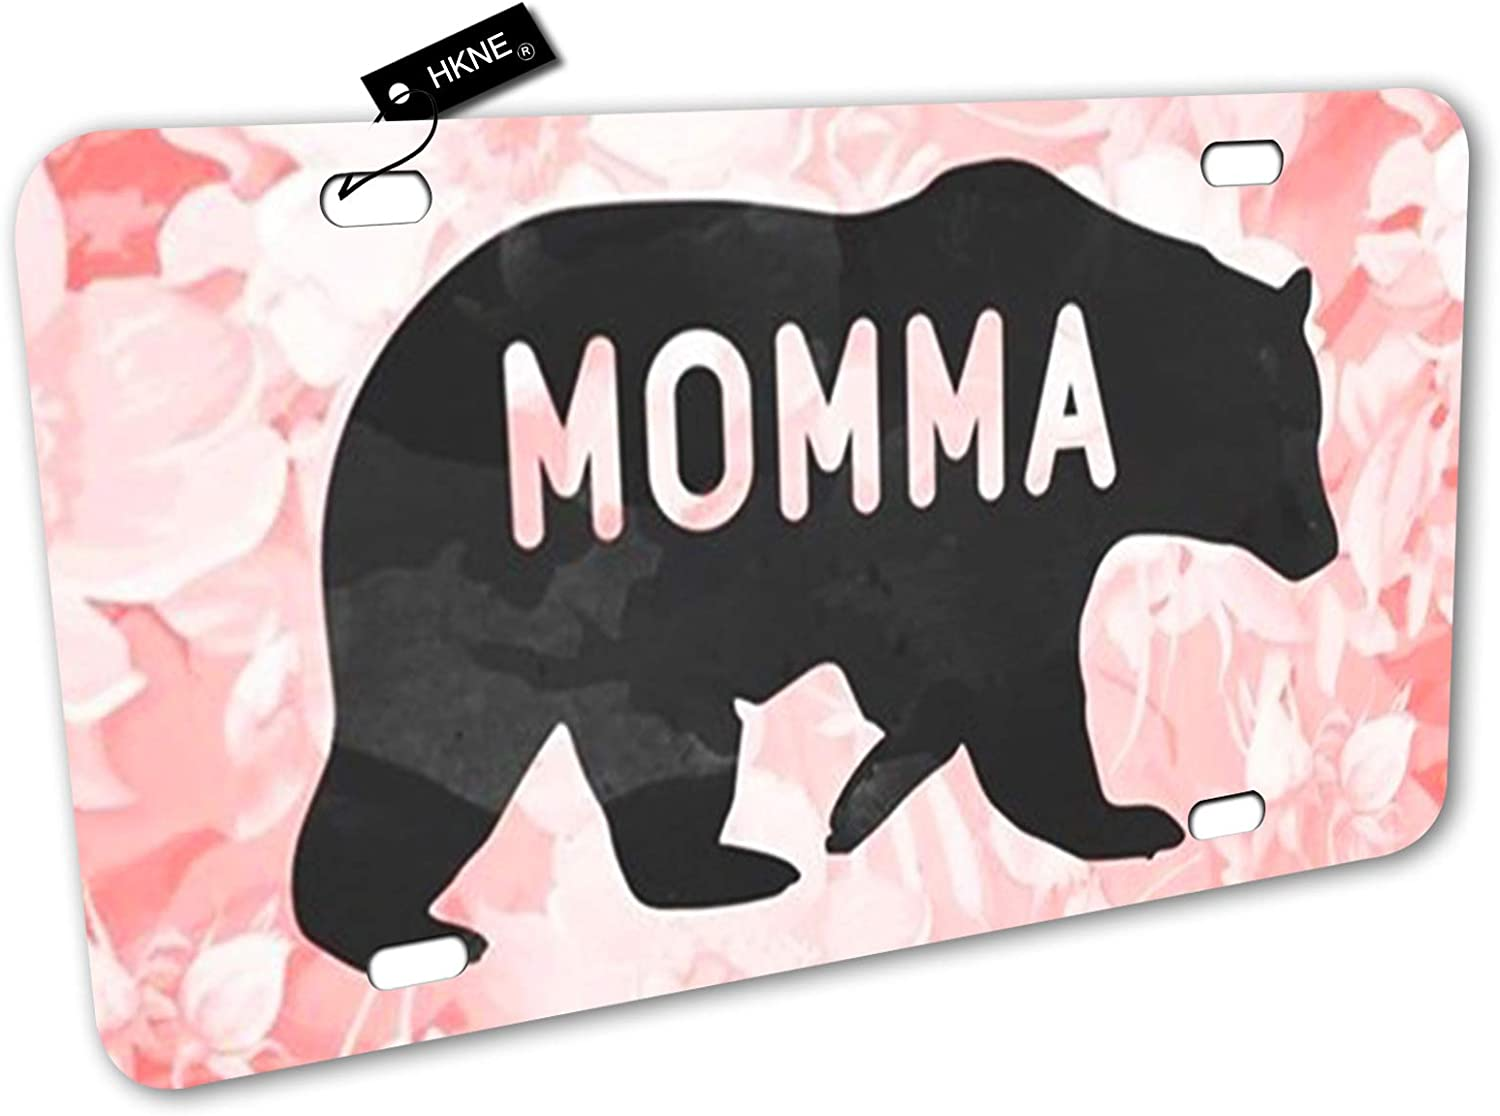 Momma Bear License Plate Front Aluminum Metal License Plate Auto Car Tag Novelty Home Decor Signs for Women for Mom Mama 6 inch X 12 inch